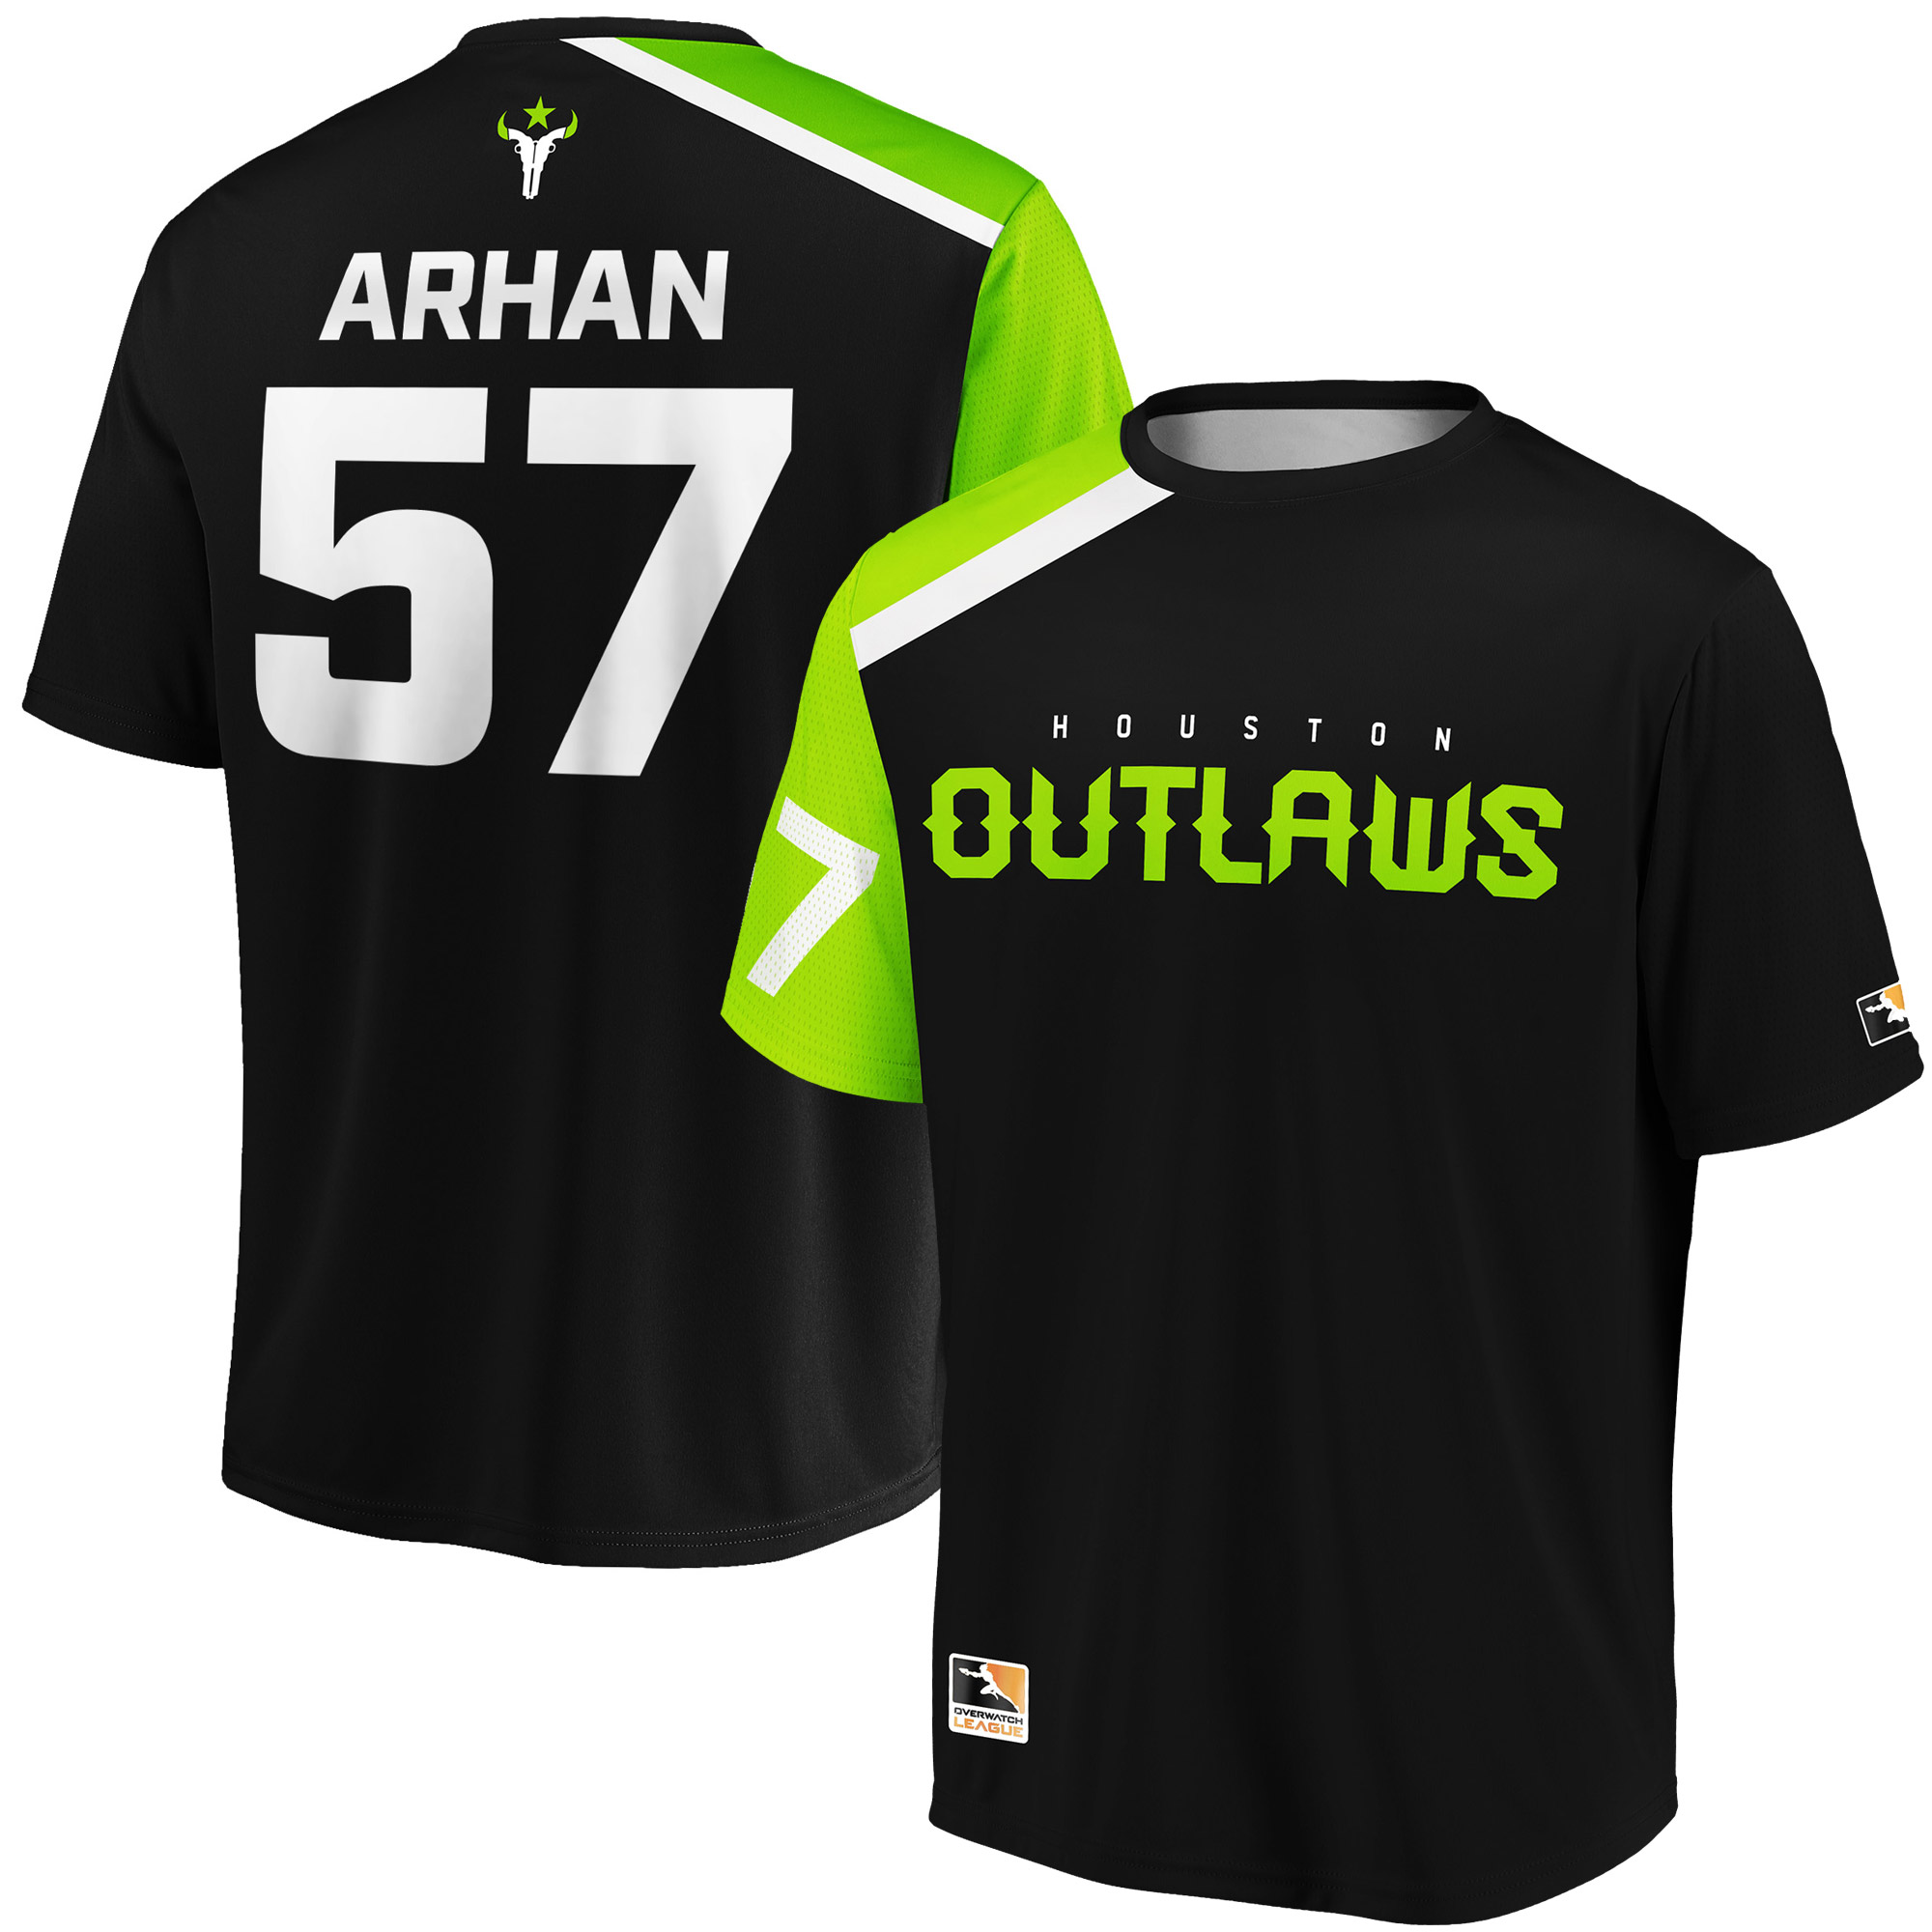 ArHaN Houston Outlaws Overwatch League Replica Home Jersey - Black